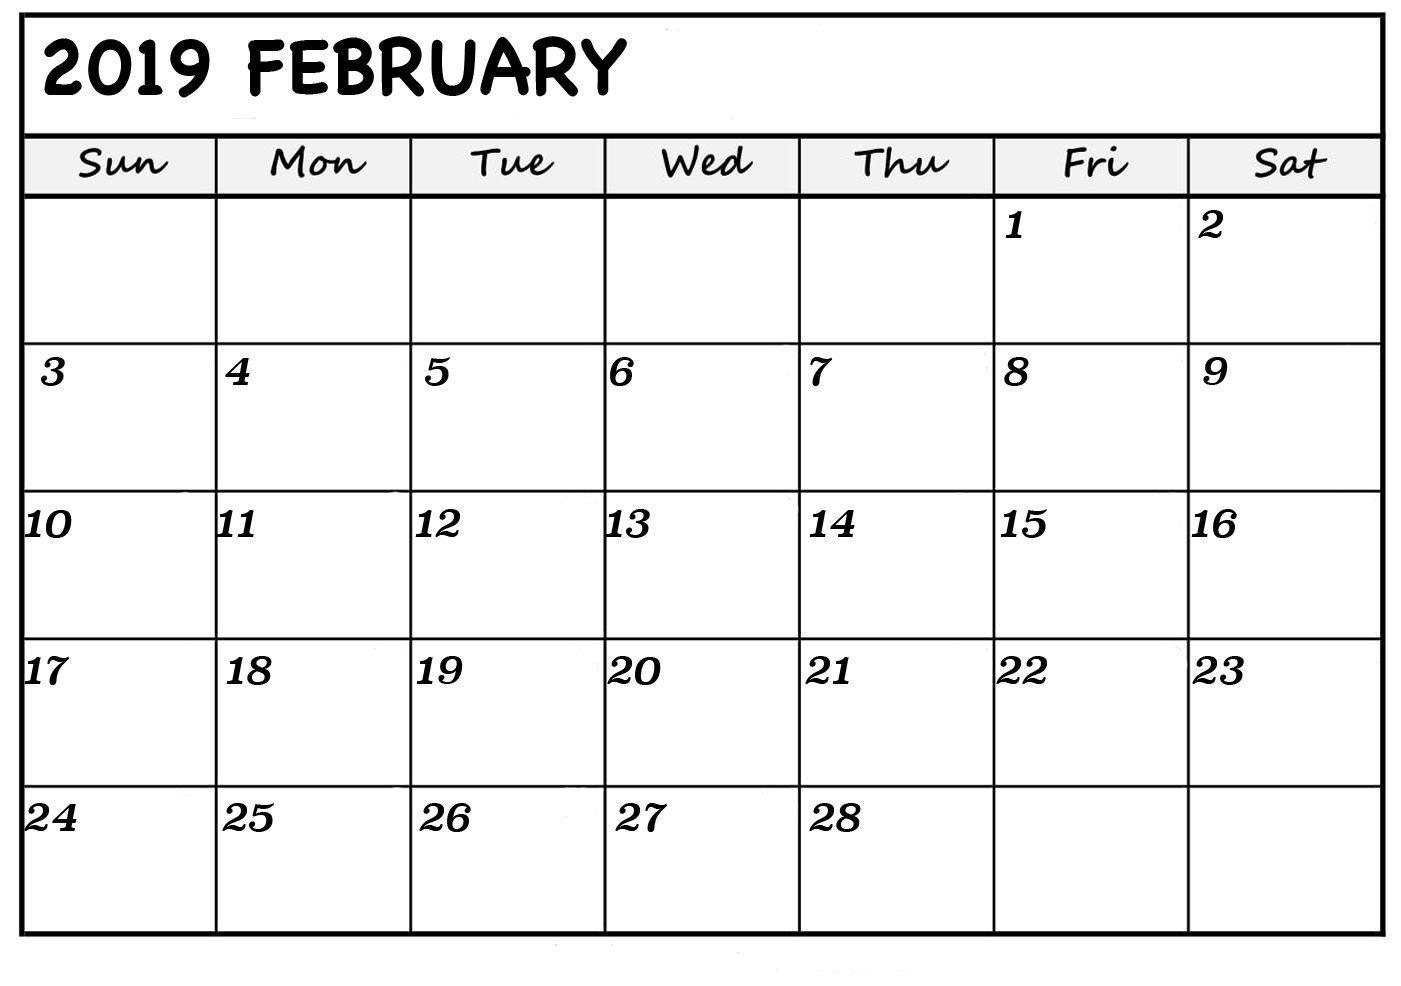 February 2019 Calendar Excel | February 2019 Calendar | Blank throughout Monthly Calendar Excel Template Free